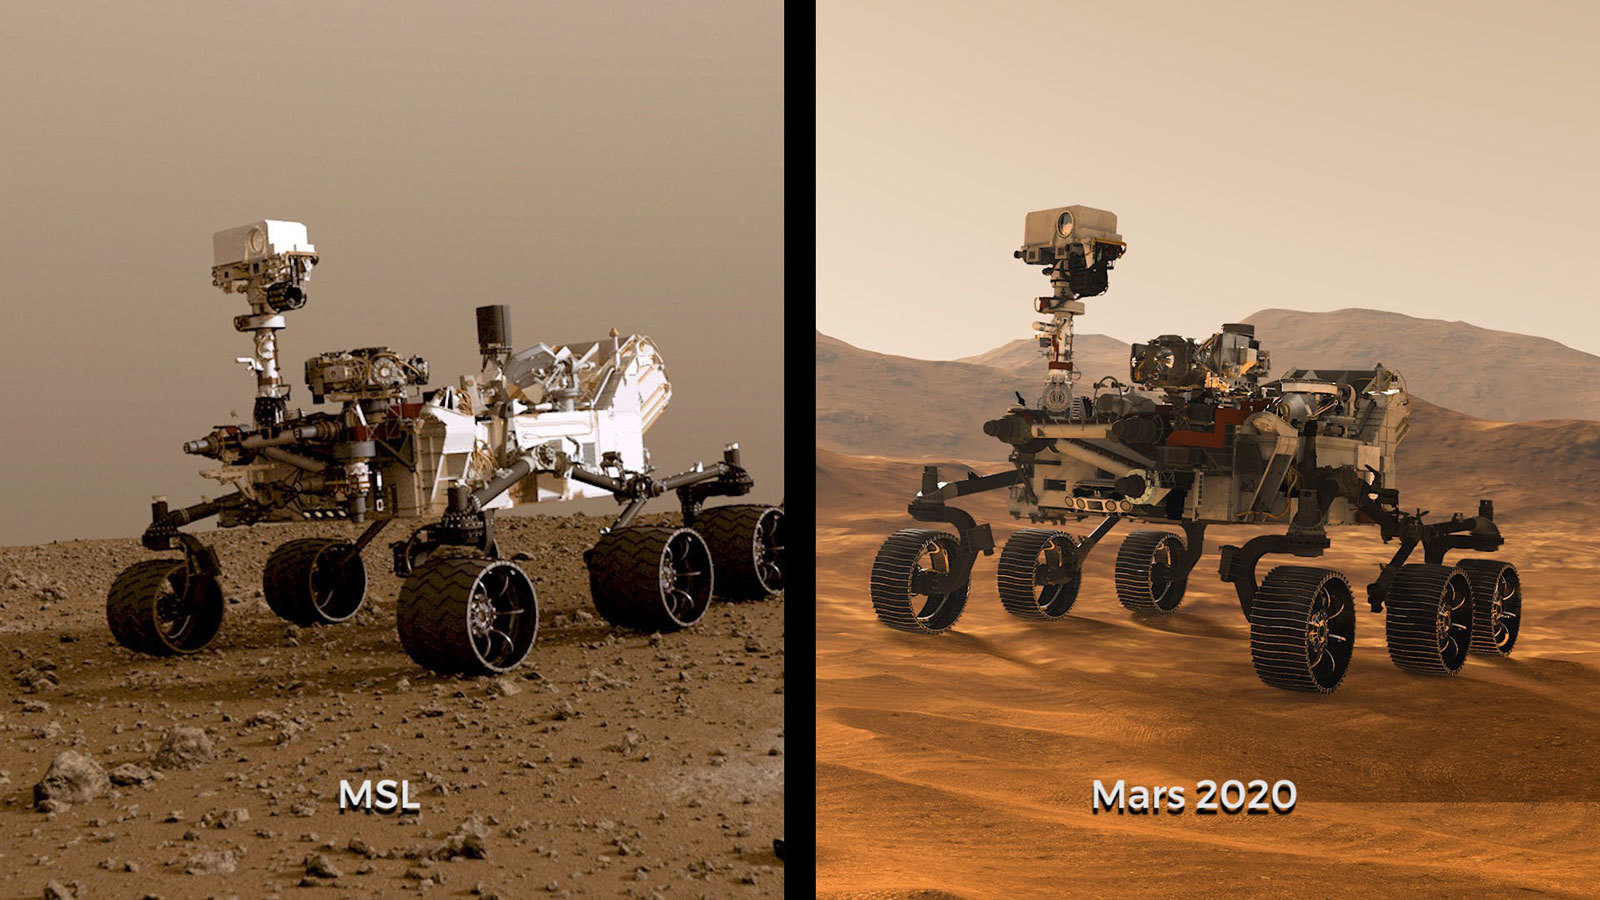 Illustrations of NASA's Curiosity and Mars 2020 rovers.